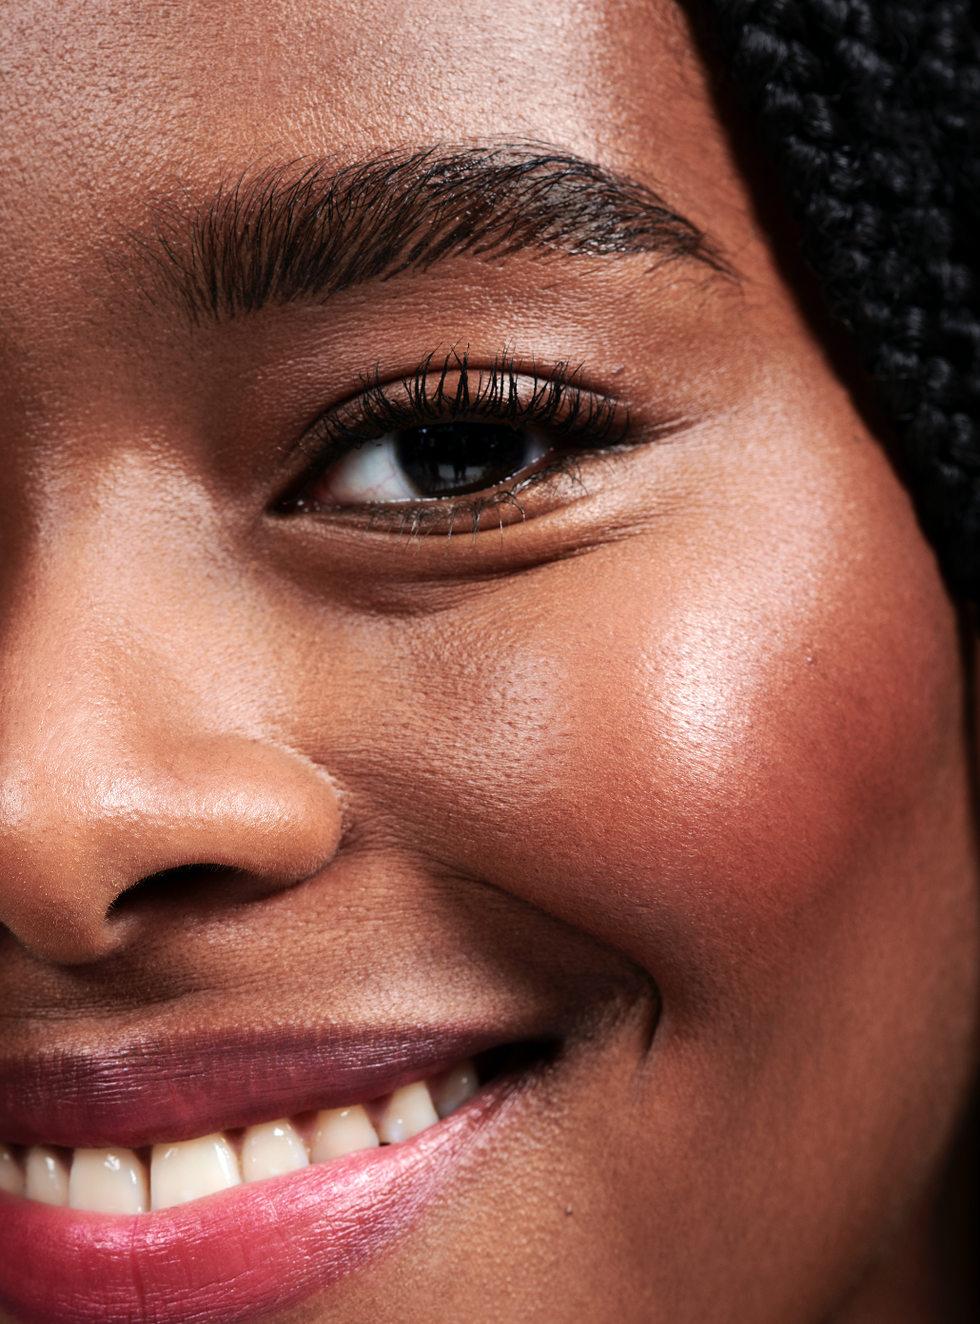 Glossier's Latest Launch Will Give You the Thicc Brows of Your Dreams